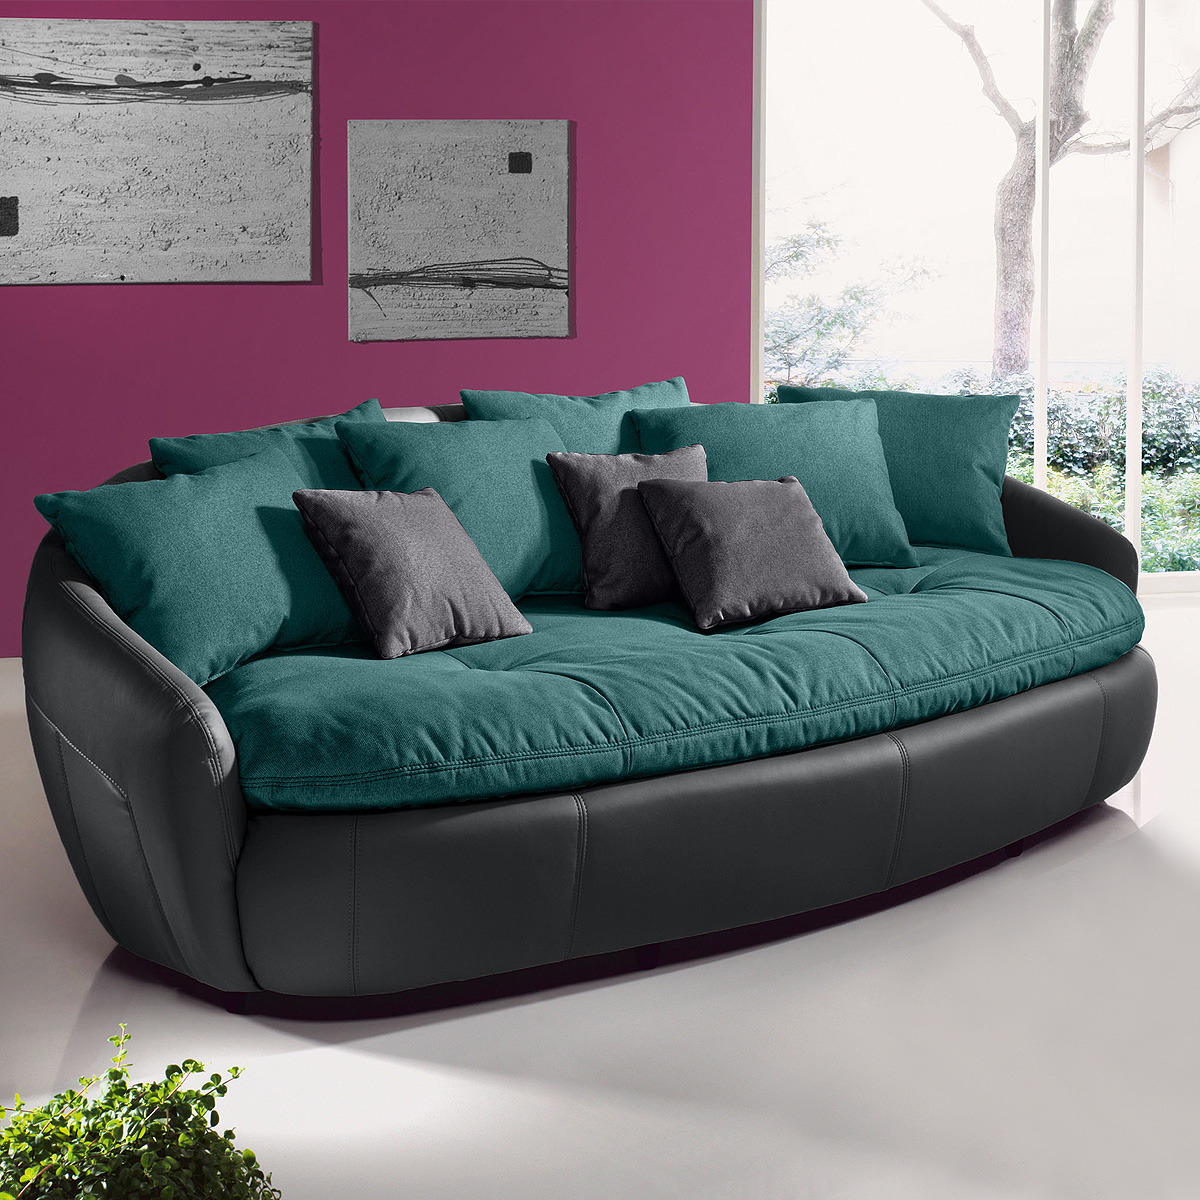 megasofa aruba 2 sofa bigsofa einzelsofa grau petrol. Black Bedroom Furniture Sets. Home Design Ideas